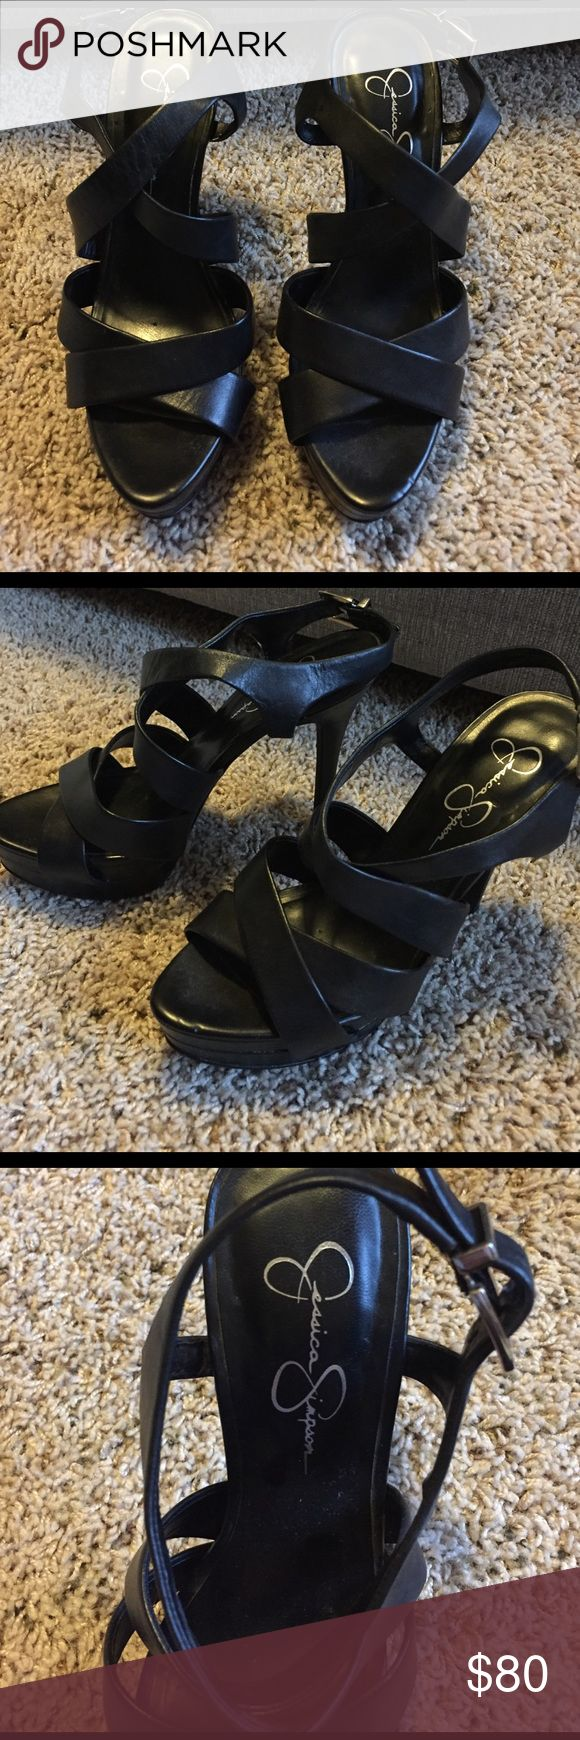 Jessica Simpson Black High Heels Black leather Jessica Simpson heels.  Heel height is about 3.5-4 inches.  Good condition/like new, worn only once. Jessica Simpson Shoes Heels